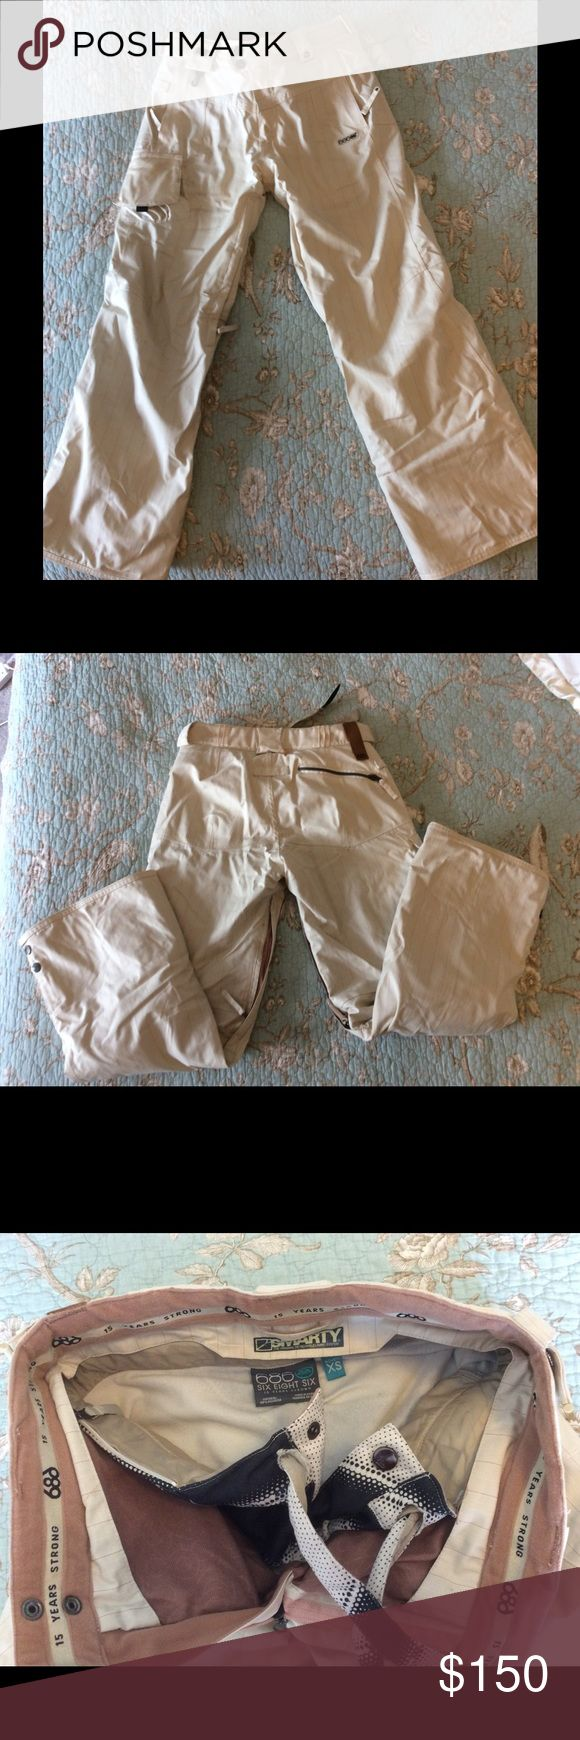 686 smarty ski pants women's XS Women's ski pants 686 smarty insulated ski/snowboard pants. Cream color size XS. Fits size 0,2,4. Worn twice. Excellent condition. 686 smarty ski snowboard pants. Pants Wide Leg